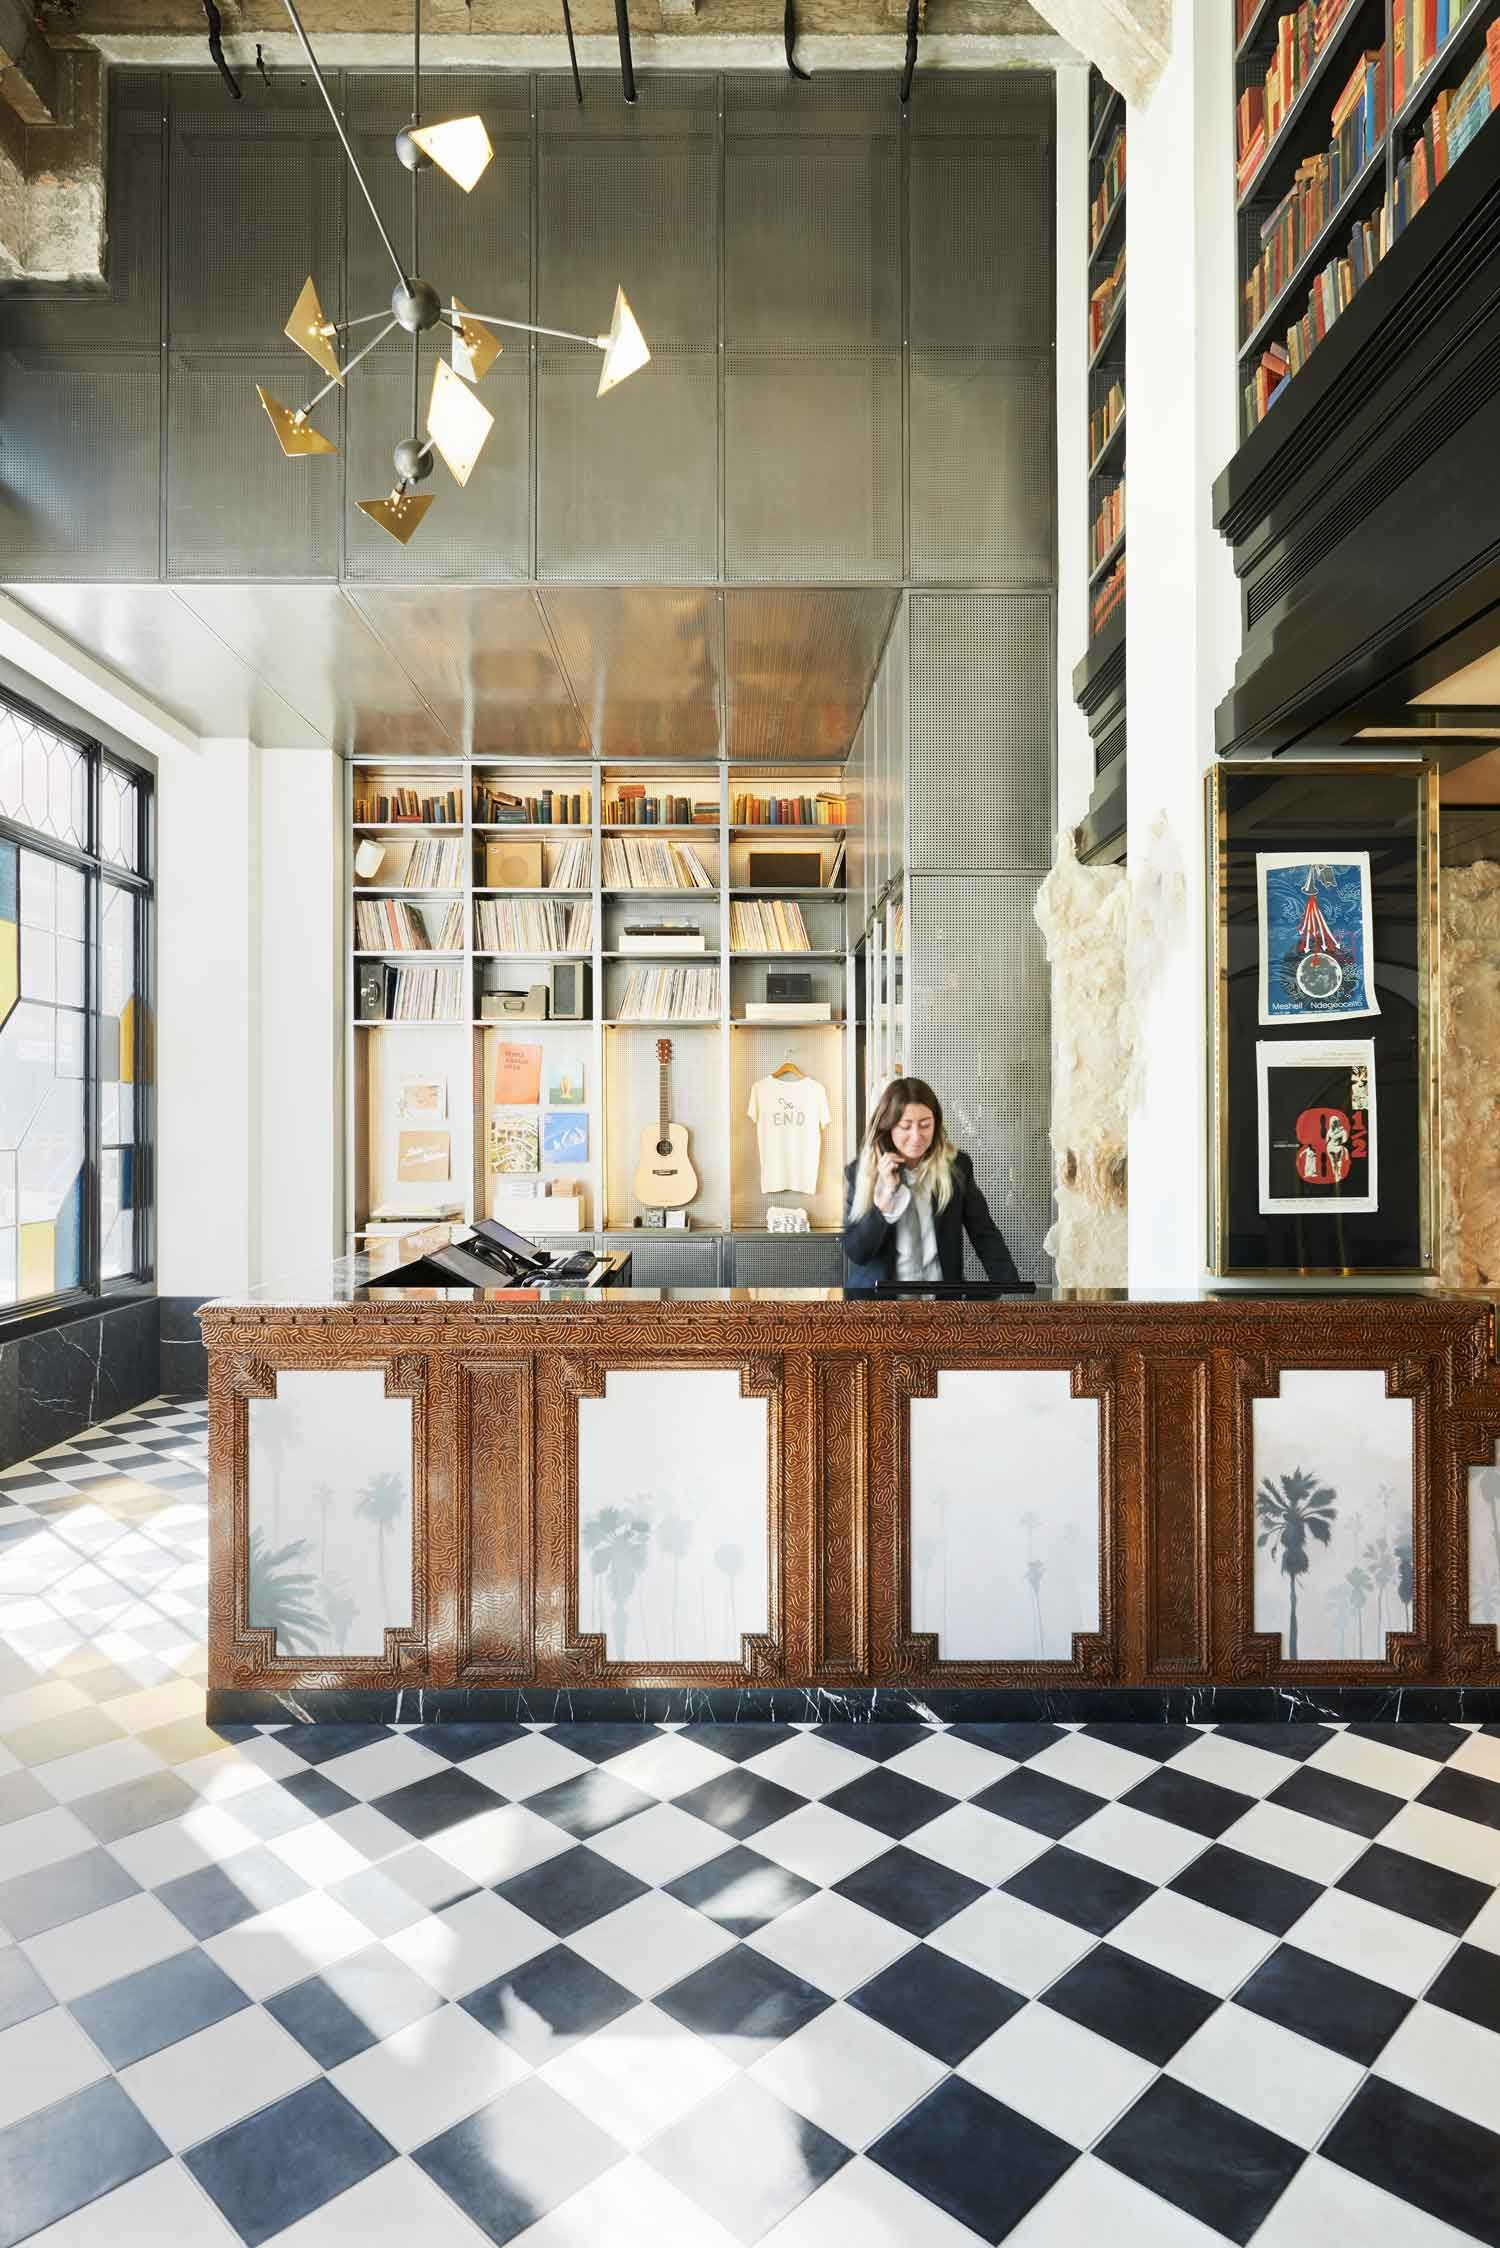 Ace hotel downtown la httpwww yellowtrace com au